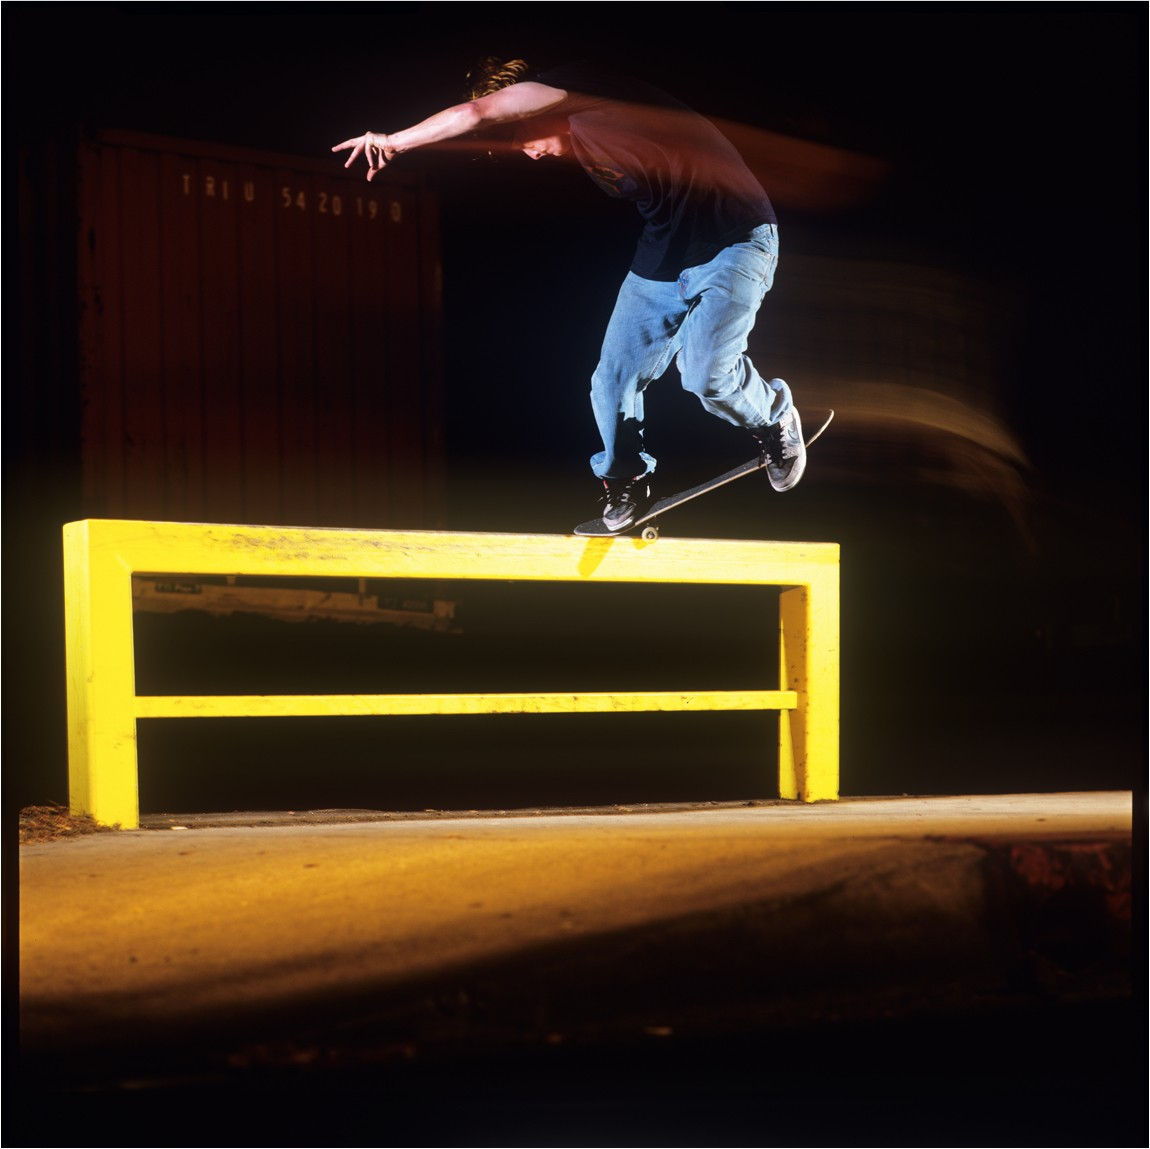 Wieger Van Wageningen skating Supreme Dunks in the original ad campaign.